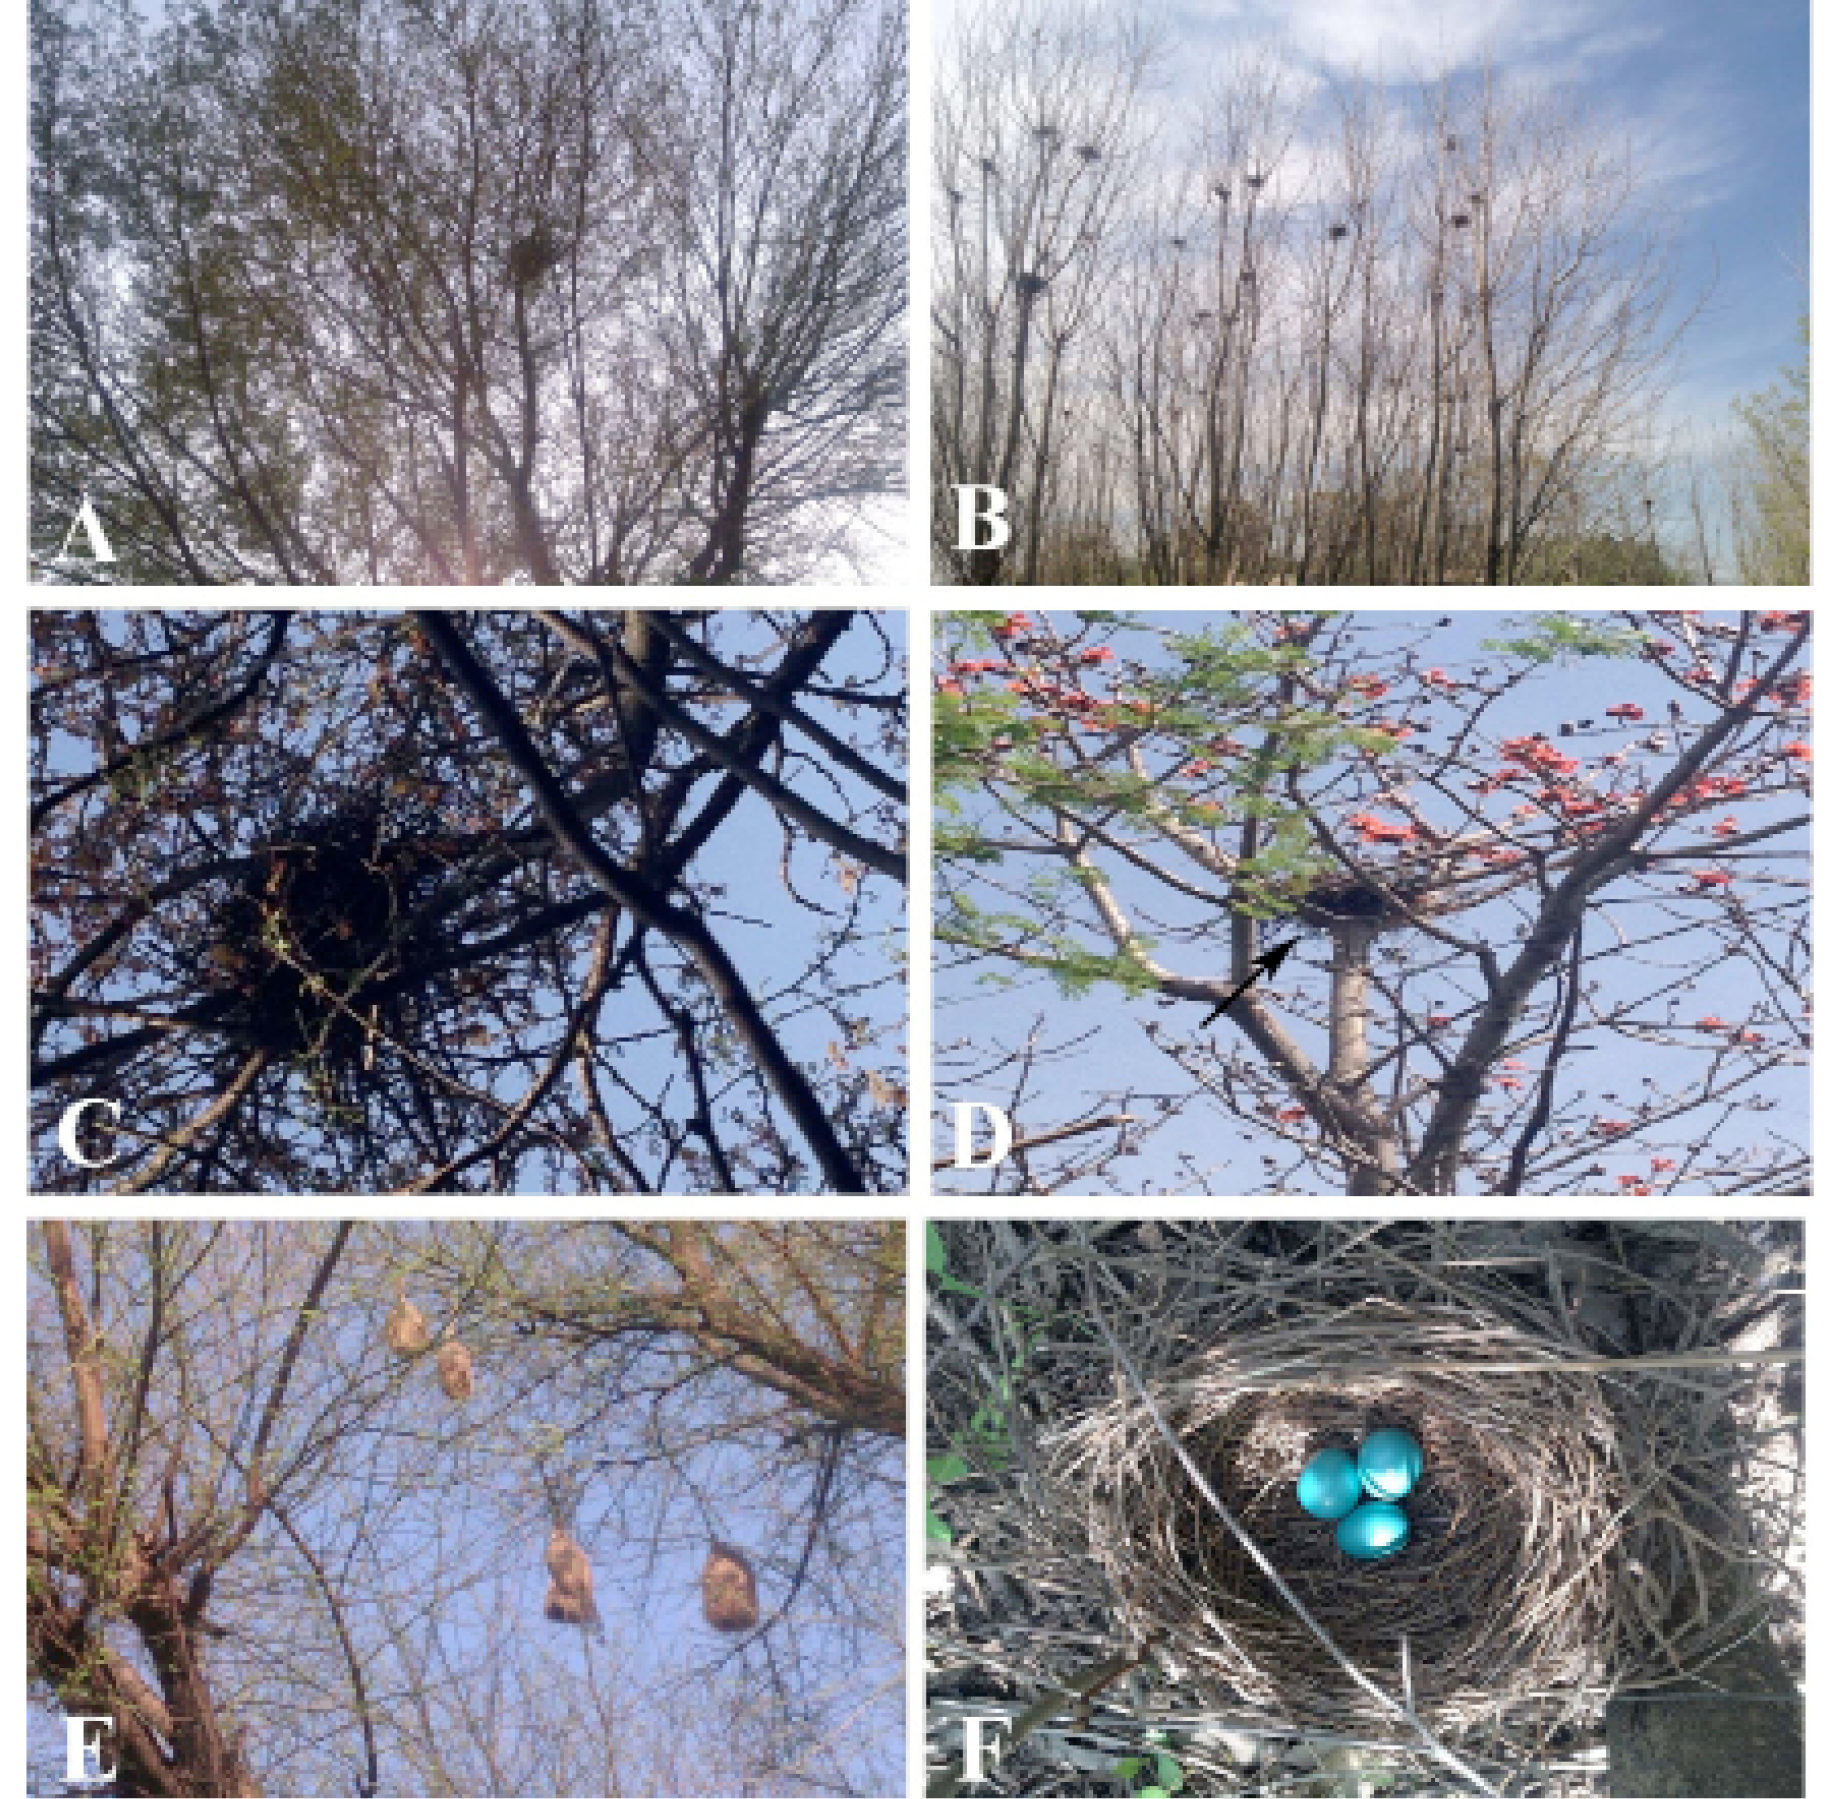 Nesting Use Of Tree Species By Avifauna Inhabiting Pabbi Range